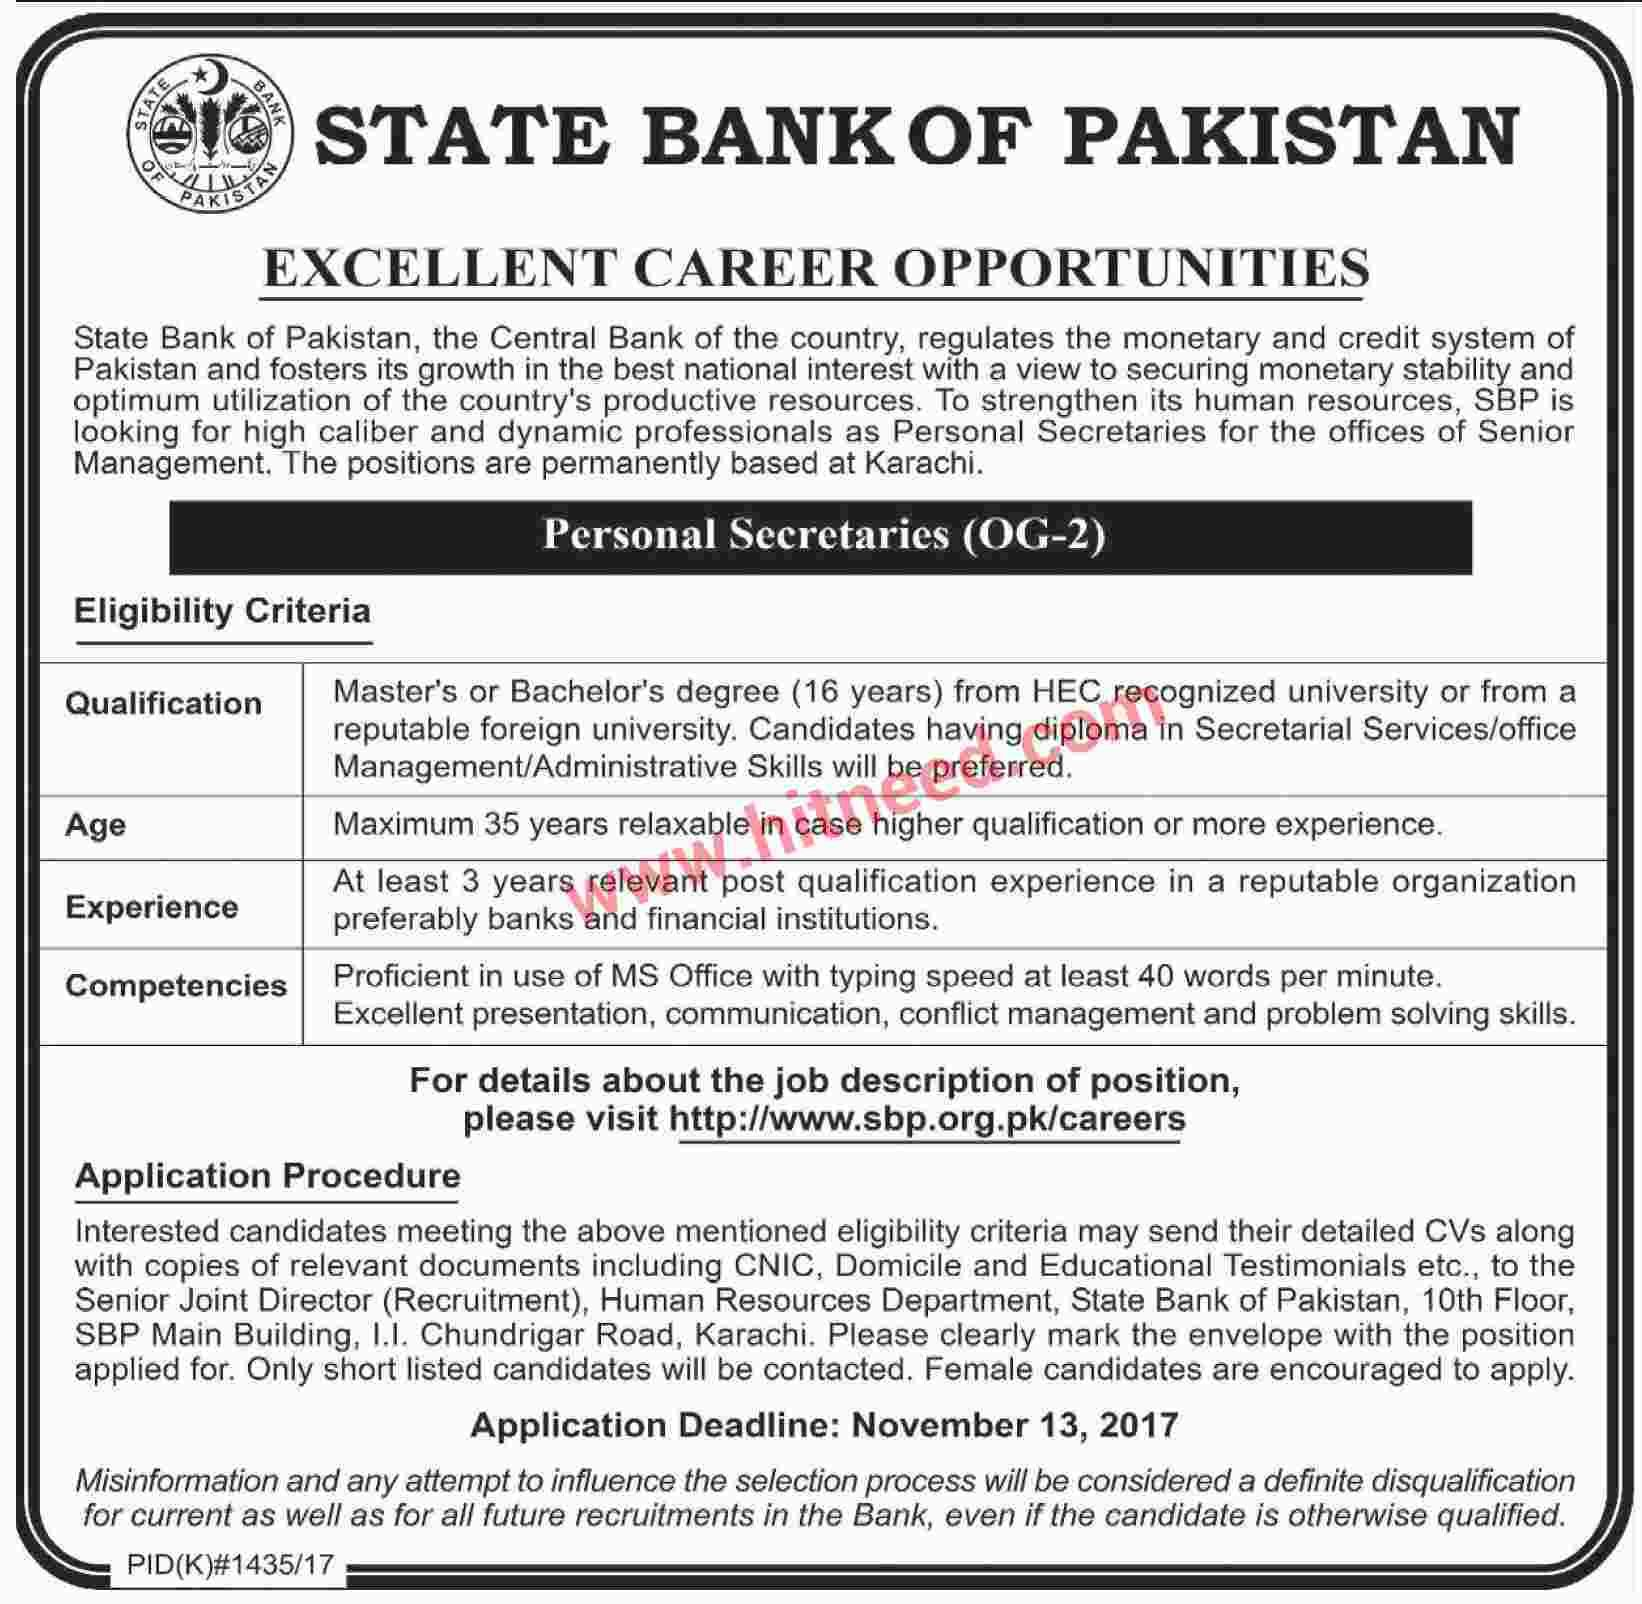 State Bank Of Pakistan Excellent Career Opportunities  Oct